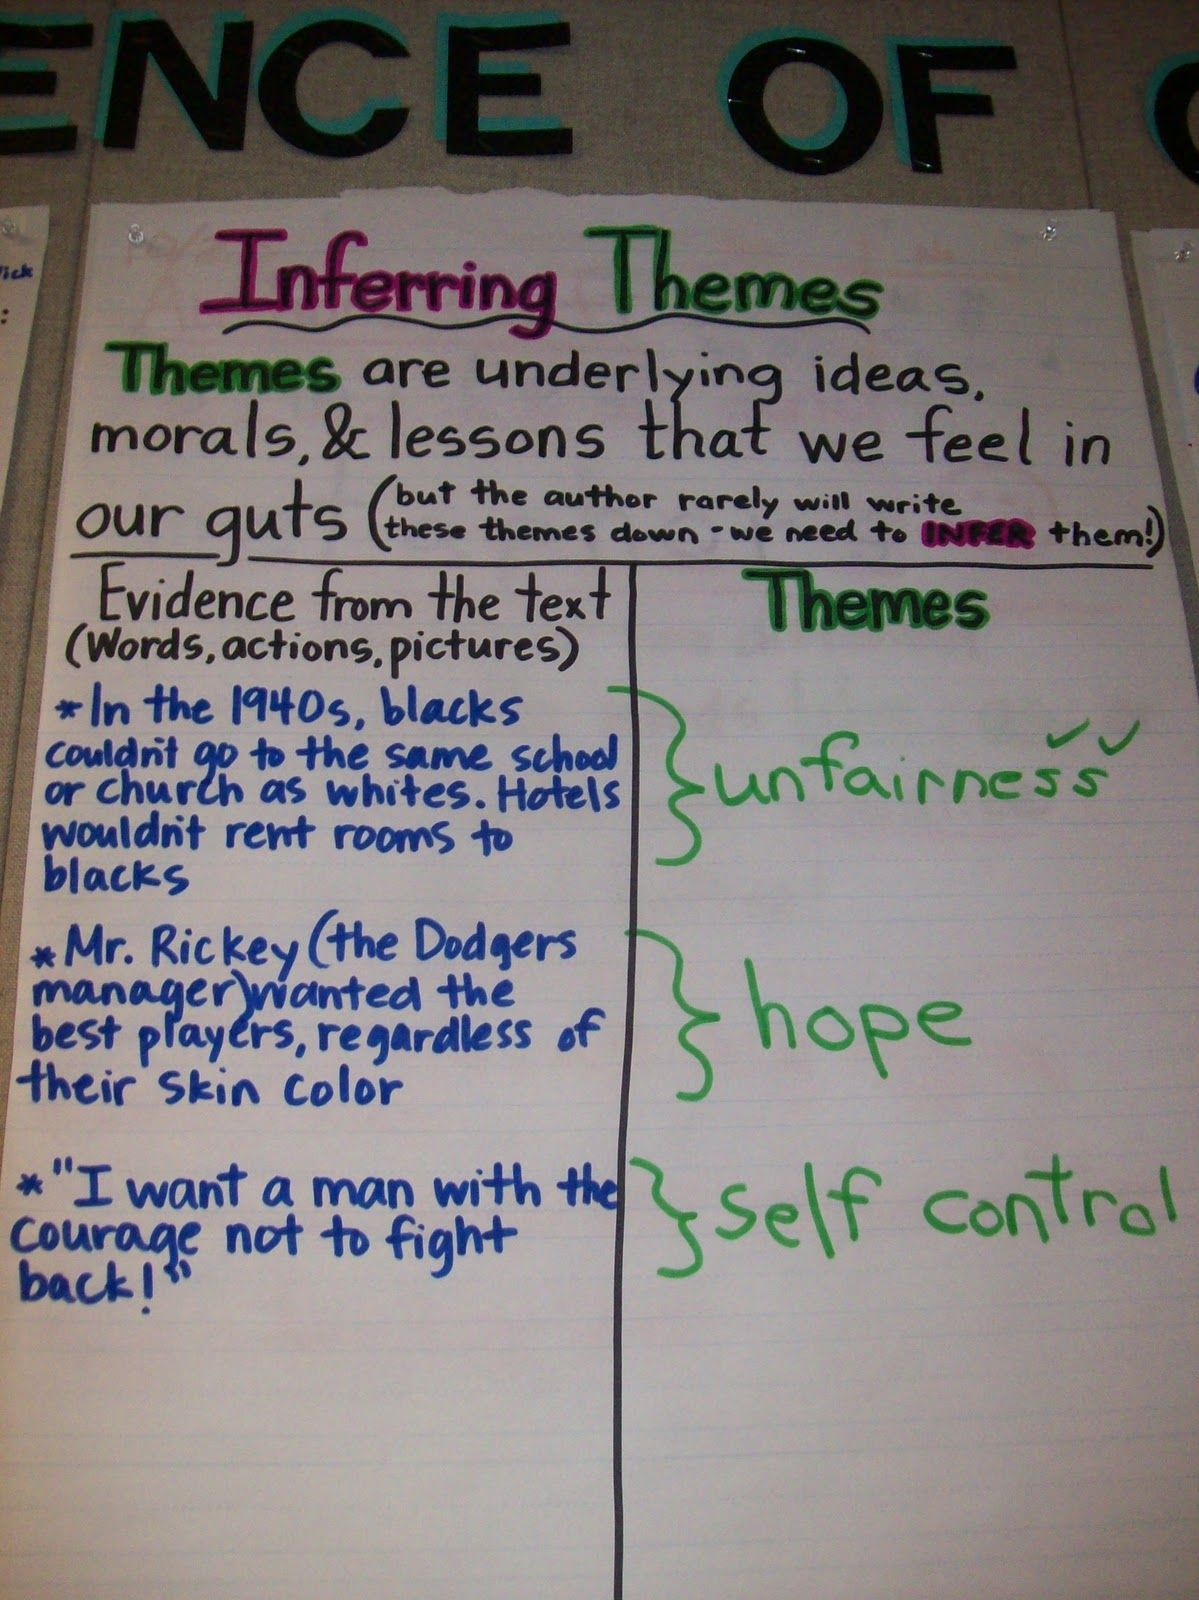 Theme Add Word Phrase Like The Use Of Evidence From